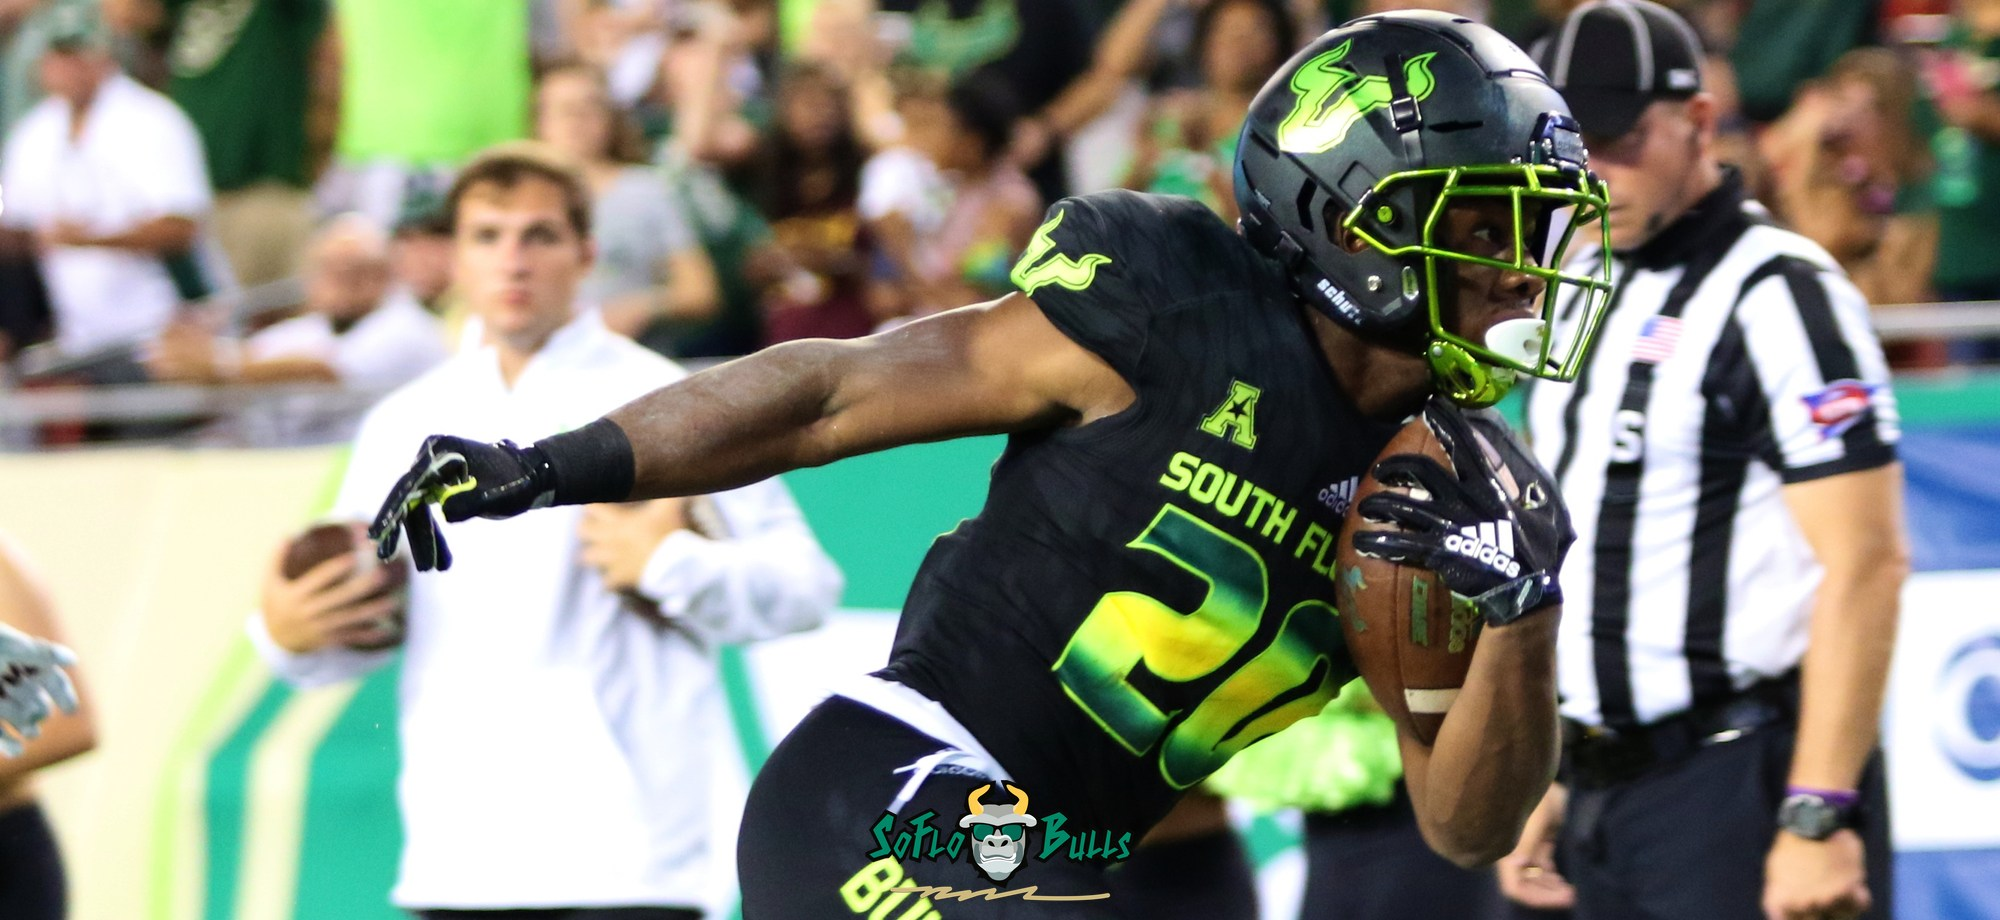 USF Drops Blackout Uniforms in Homecoming Win Over UConn by Matthew Manuri - SoFloBulls.com (2400x920)